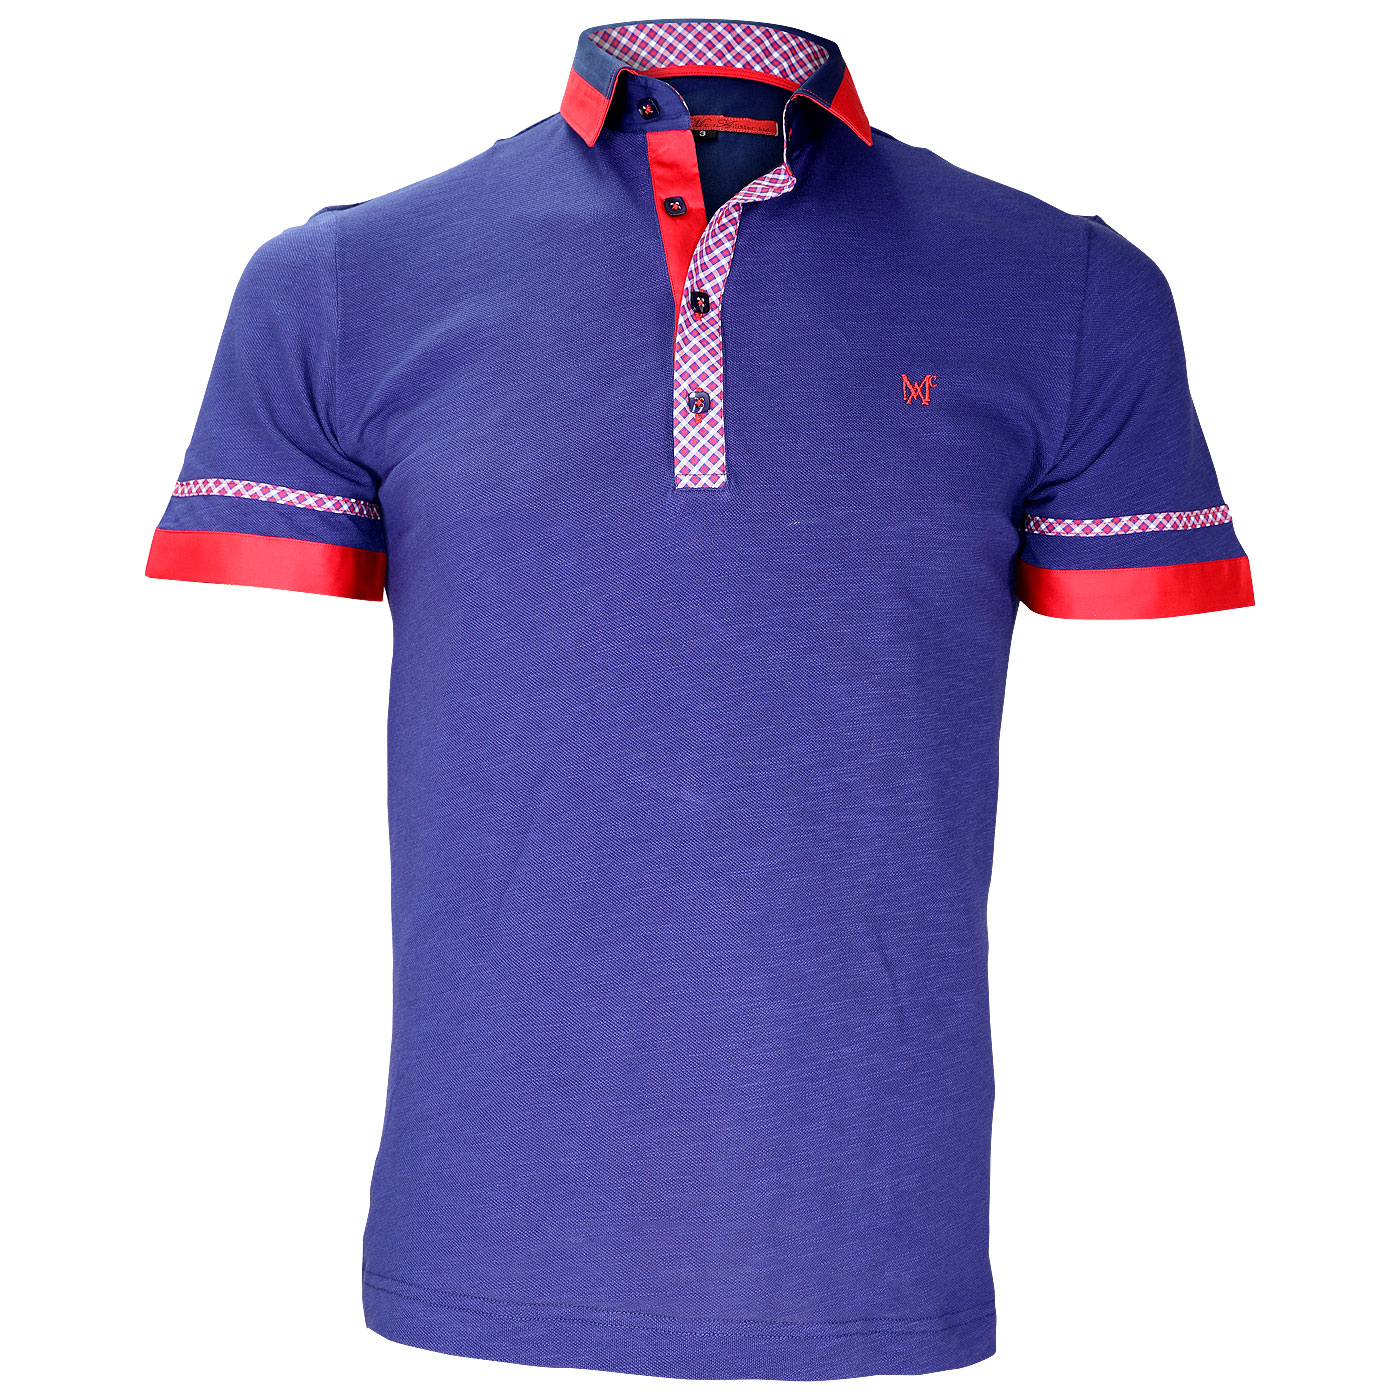 Men's Cotton Polo Shirts Exclusive Models on Webmenshirt